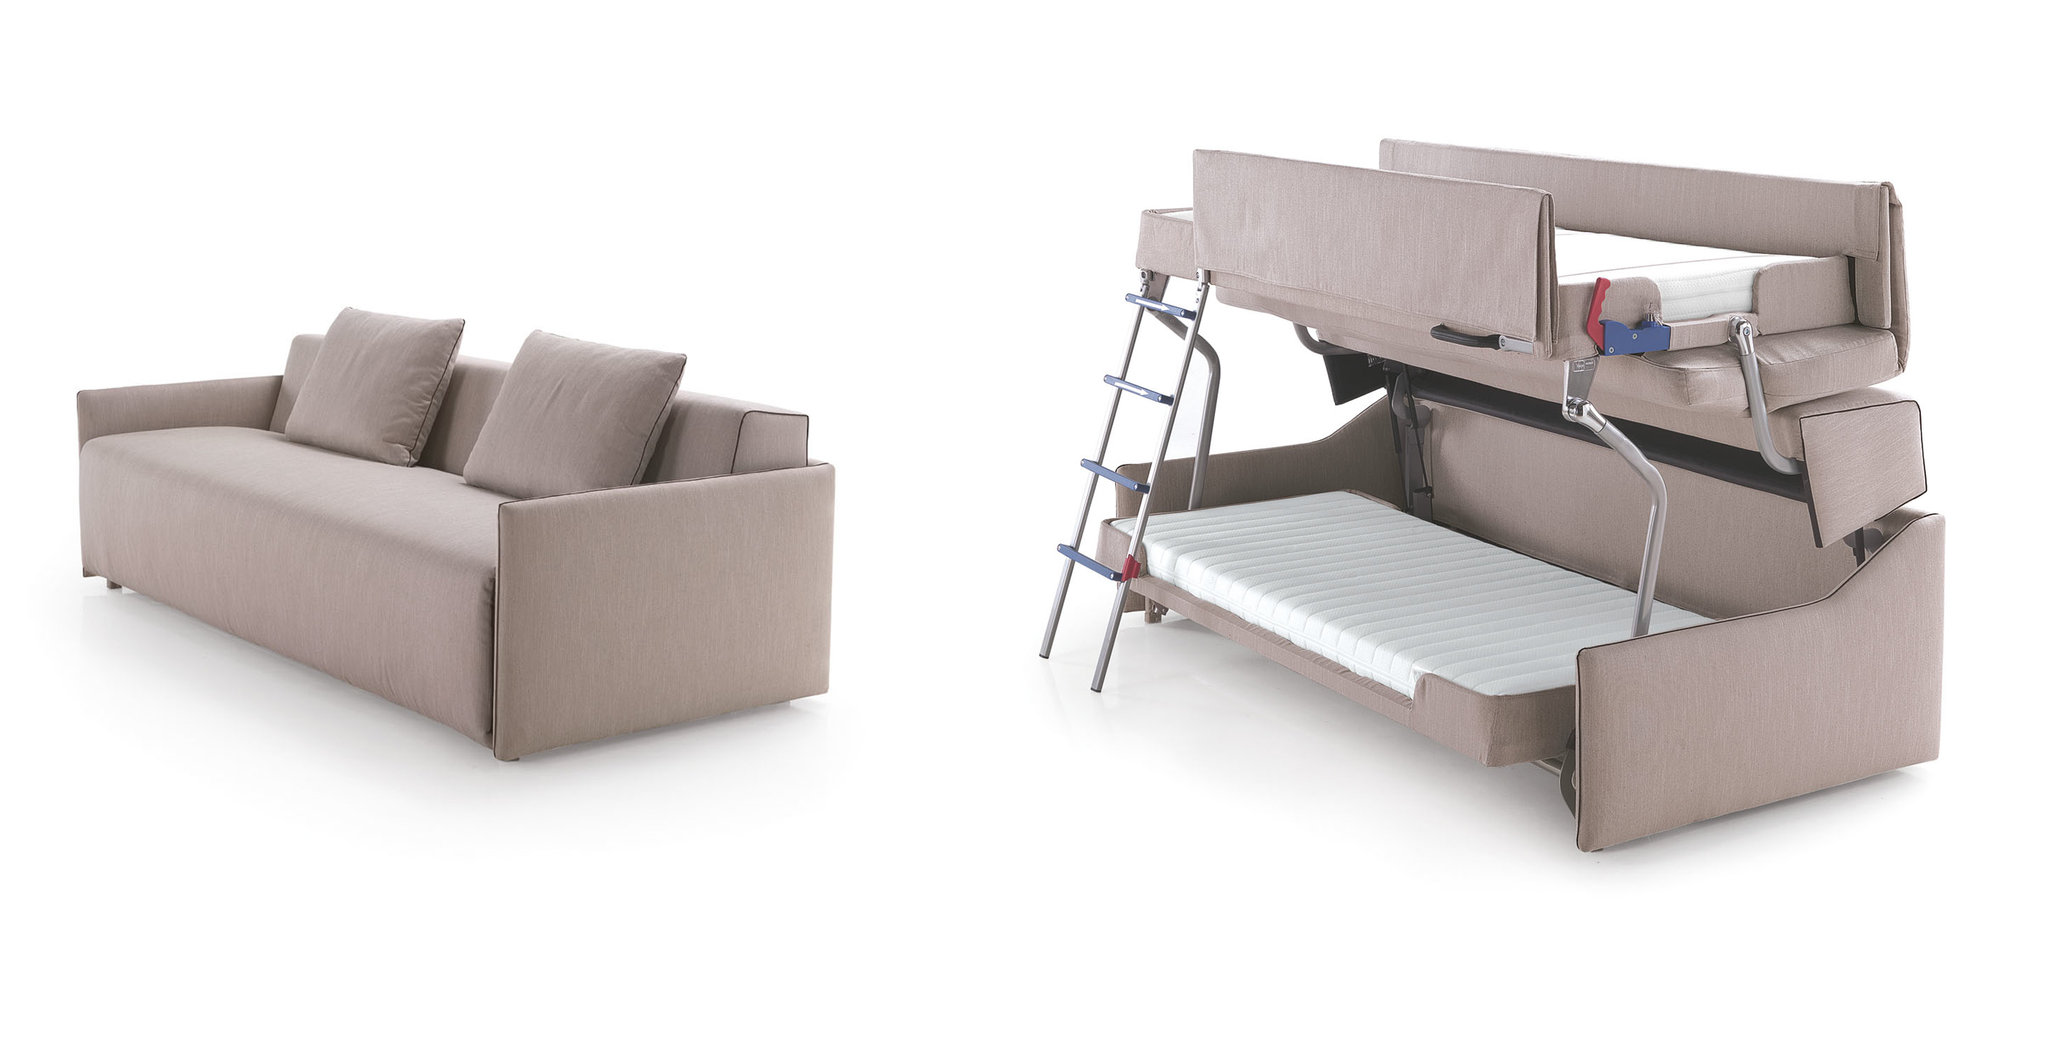 Chair That Turns Into Bed A Bunk Bed Born Of A Couch The New York Times